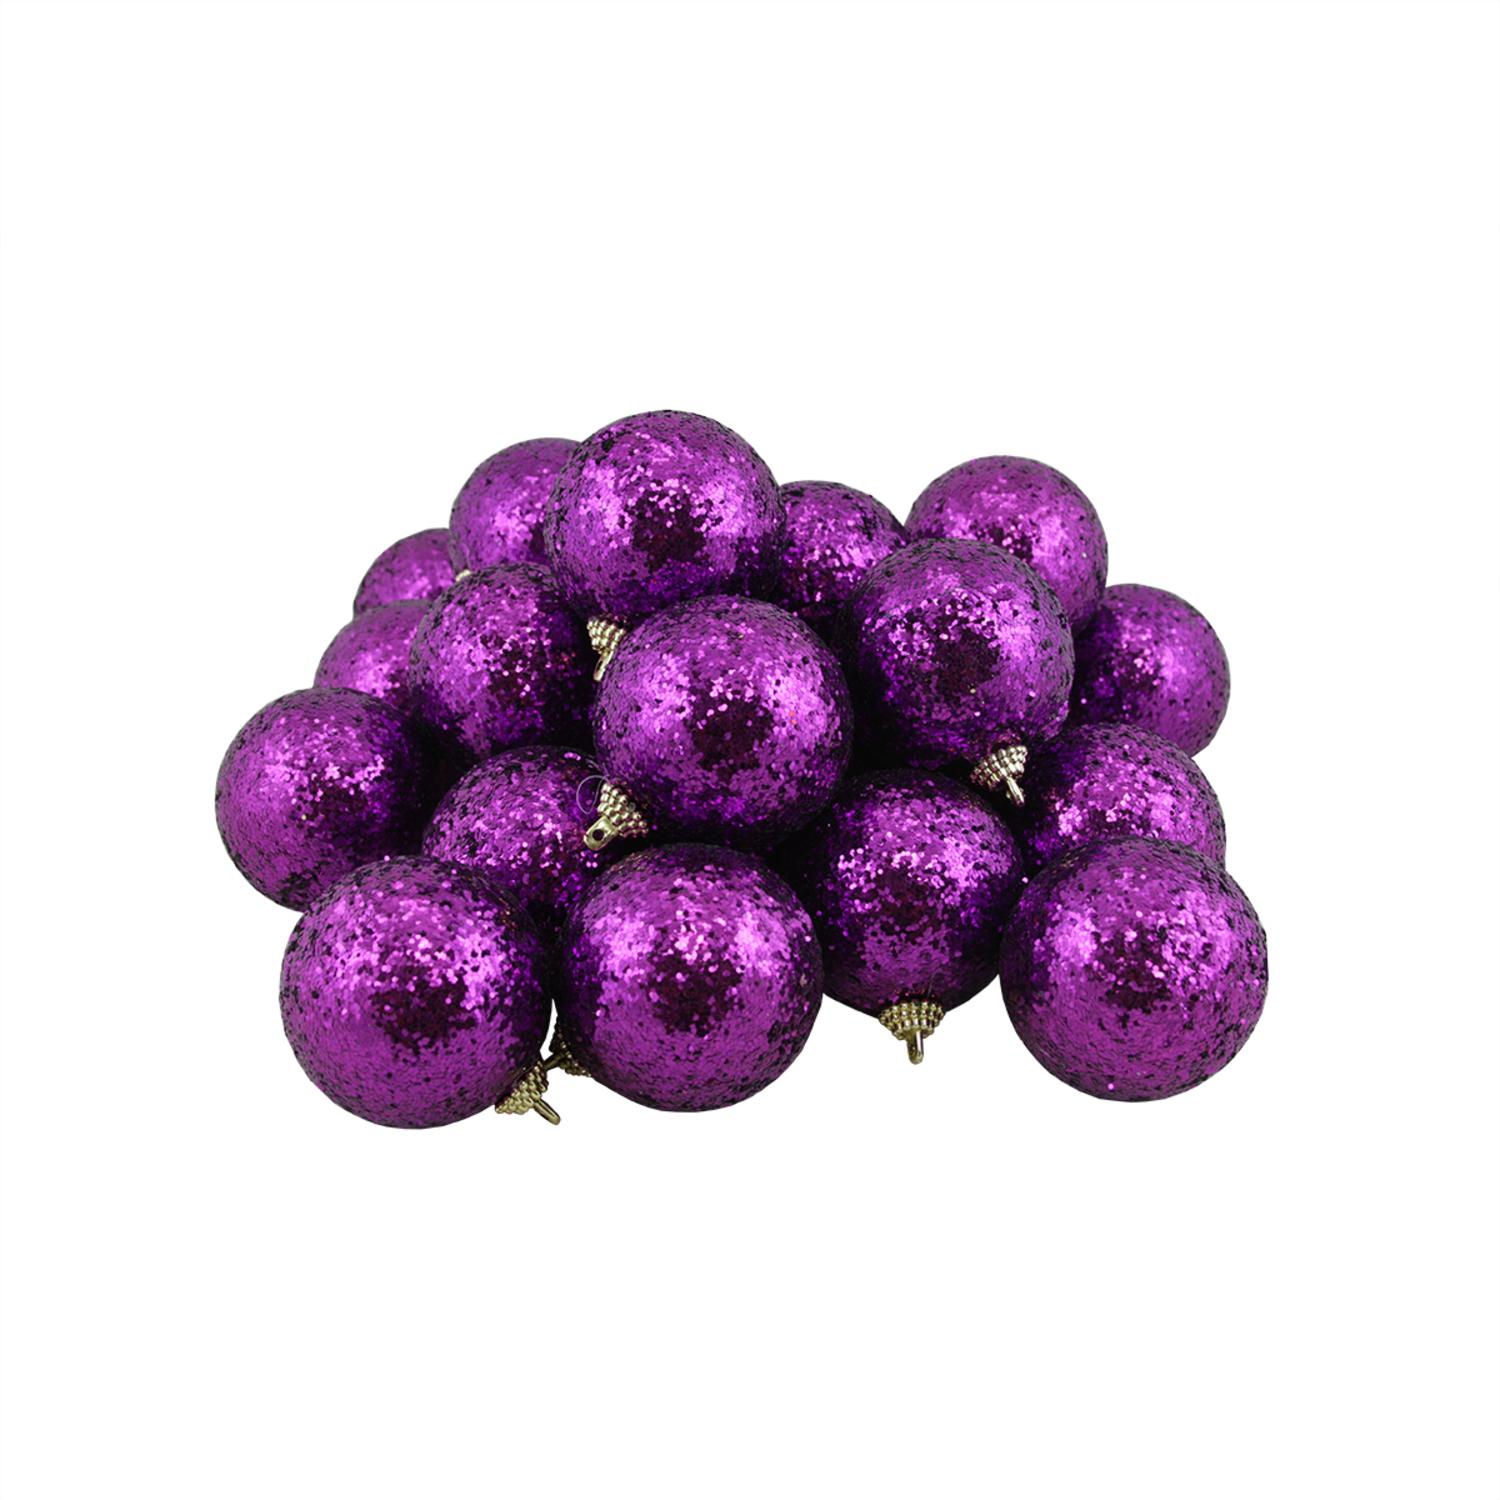 "24ct Violet Incassable Sequin Terminer Boule de Noël Ornements 2.5"" (60mm)"